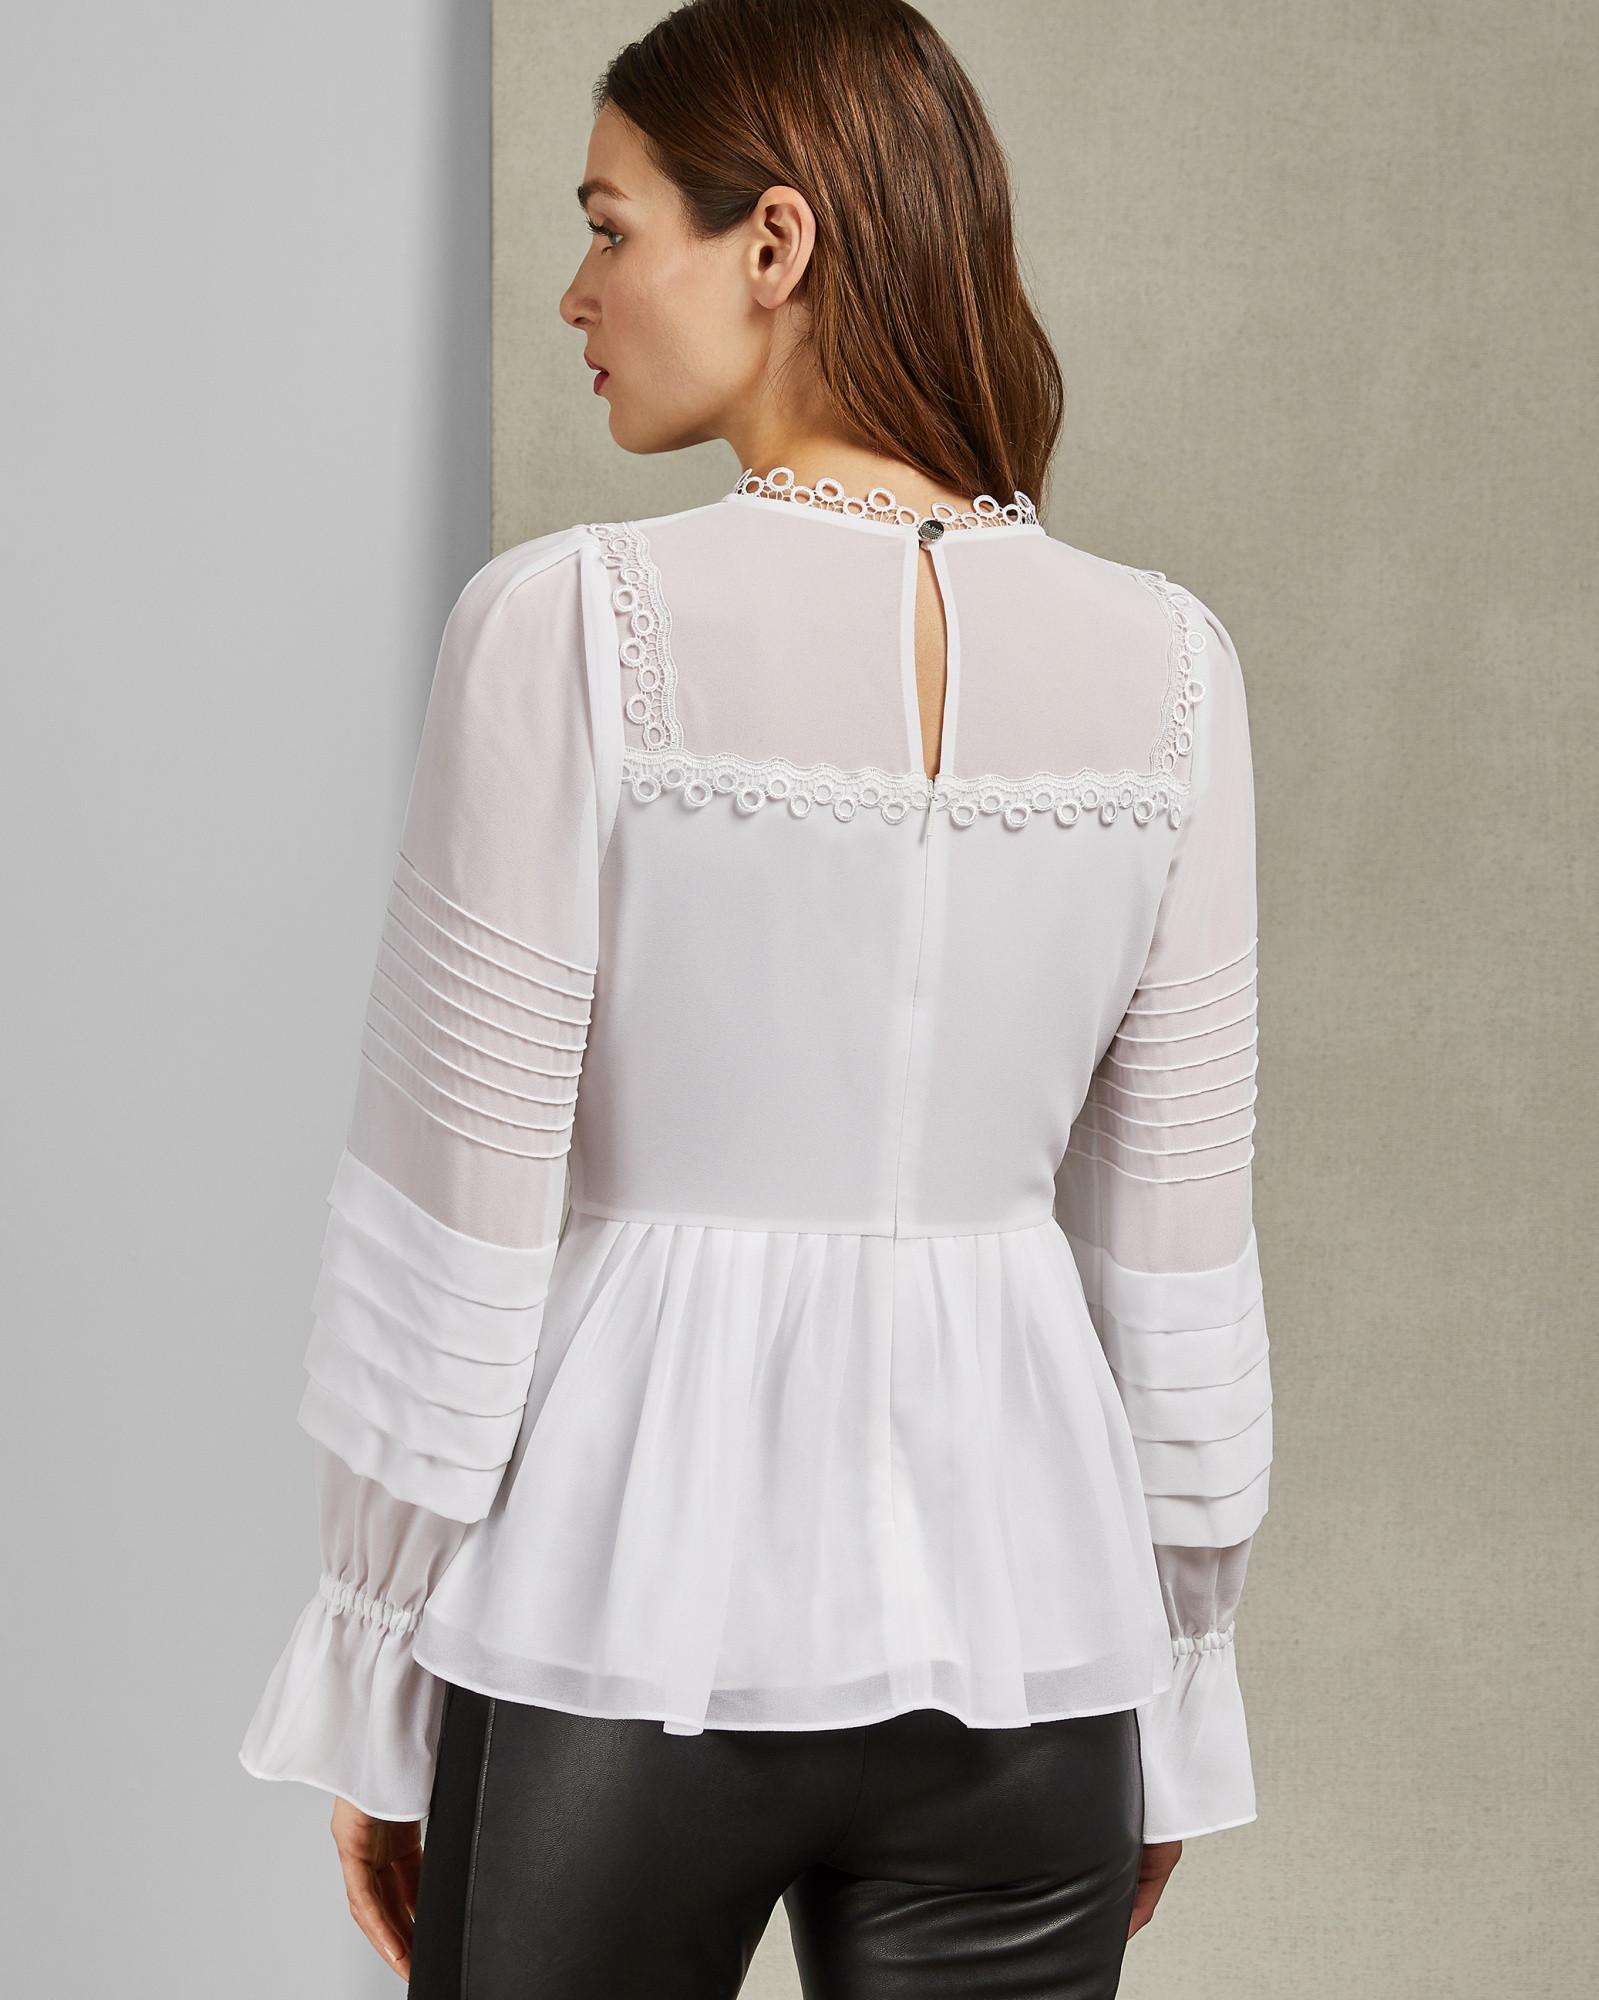 e3eec3e698437 Ted Baker Pintuck Lace Detail Top in White - Lyst